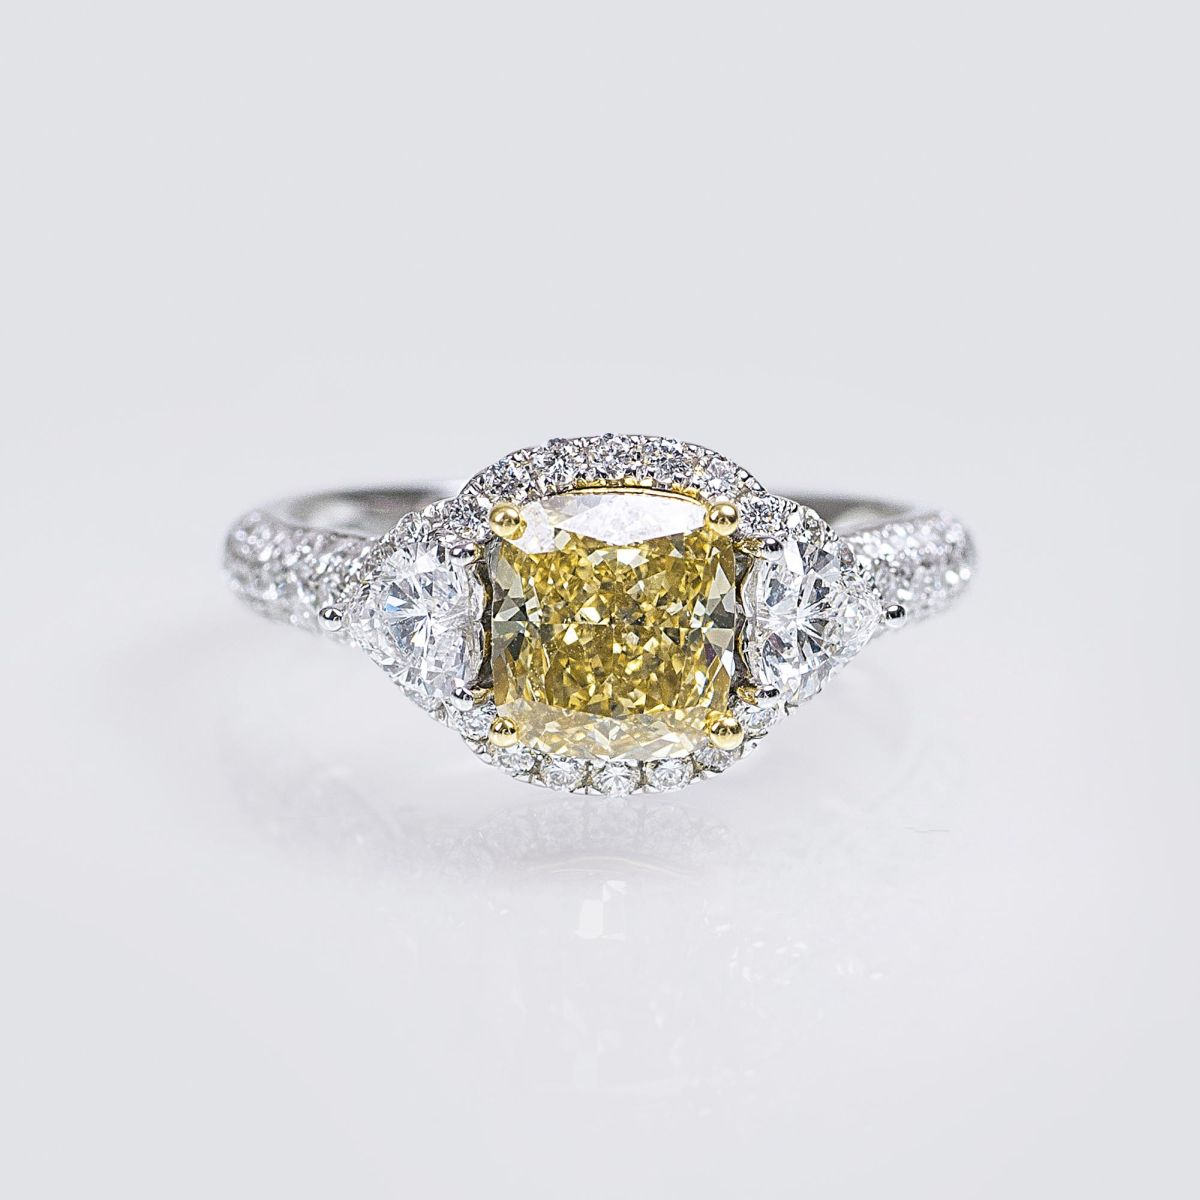 A highquality Natural Fancy Diamond Ring